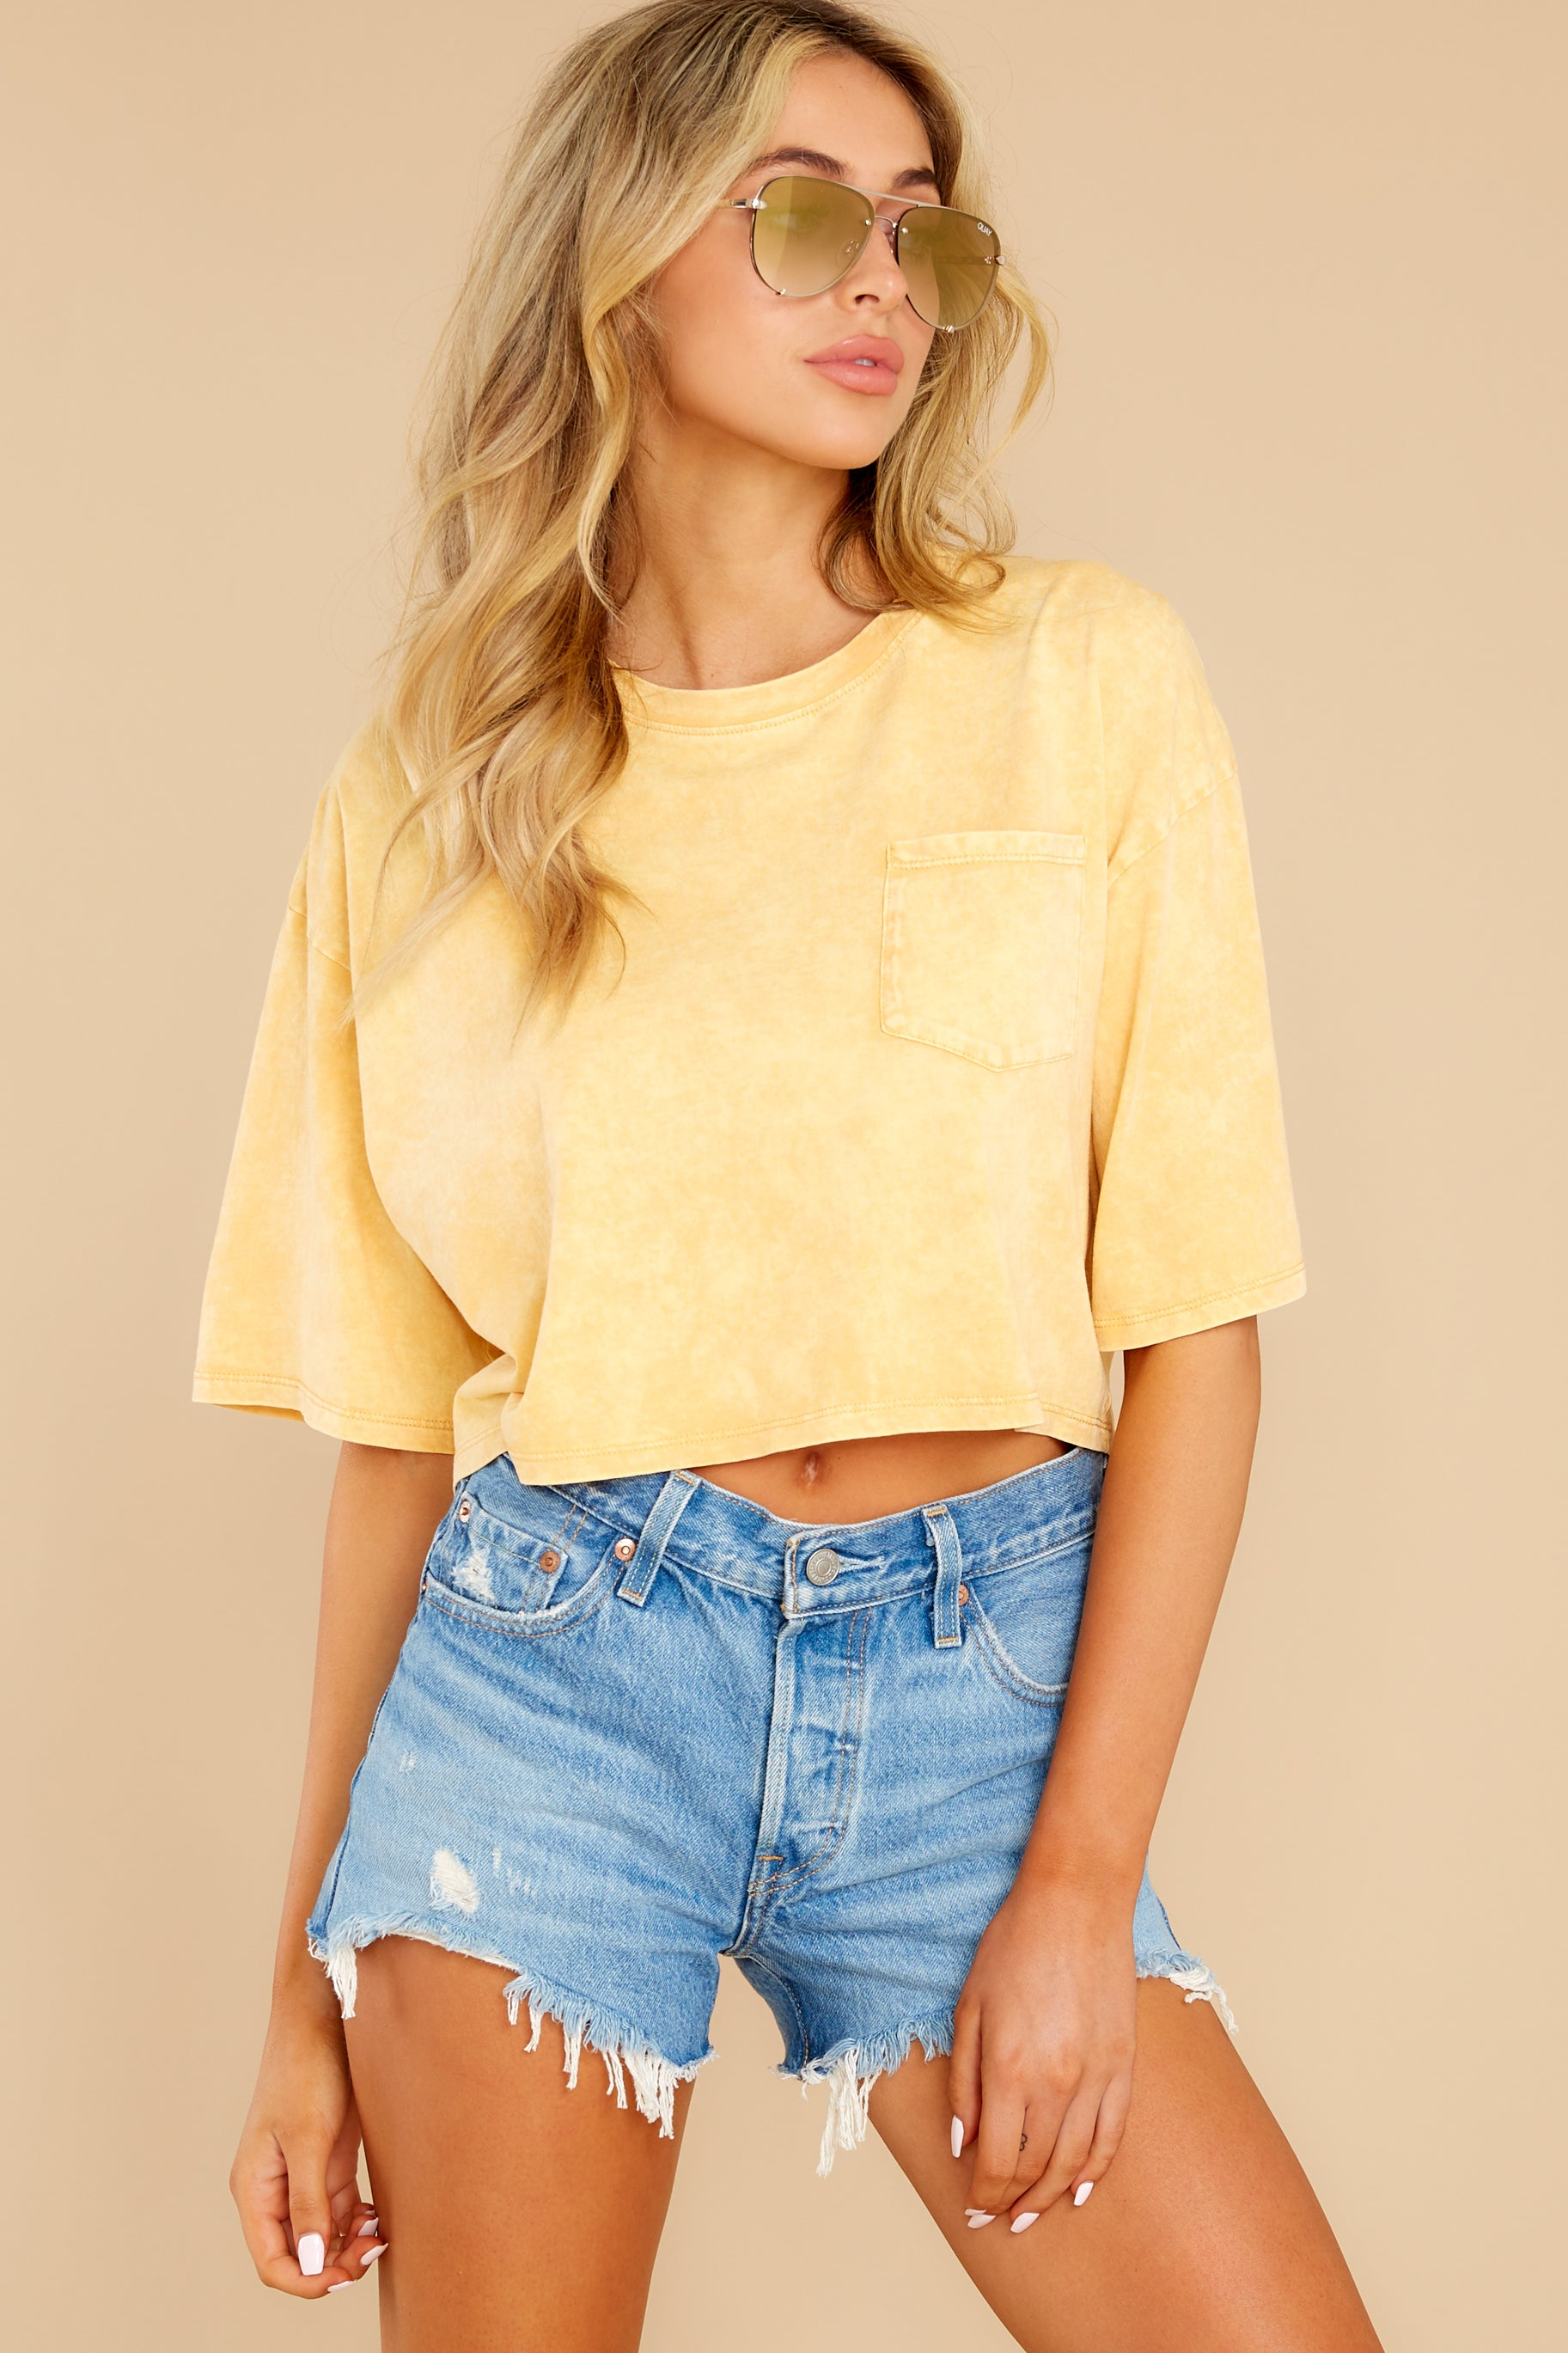 1 Resourceful To A Tee Yellow Crop Top at reddress.com